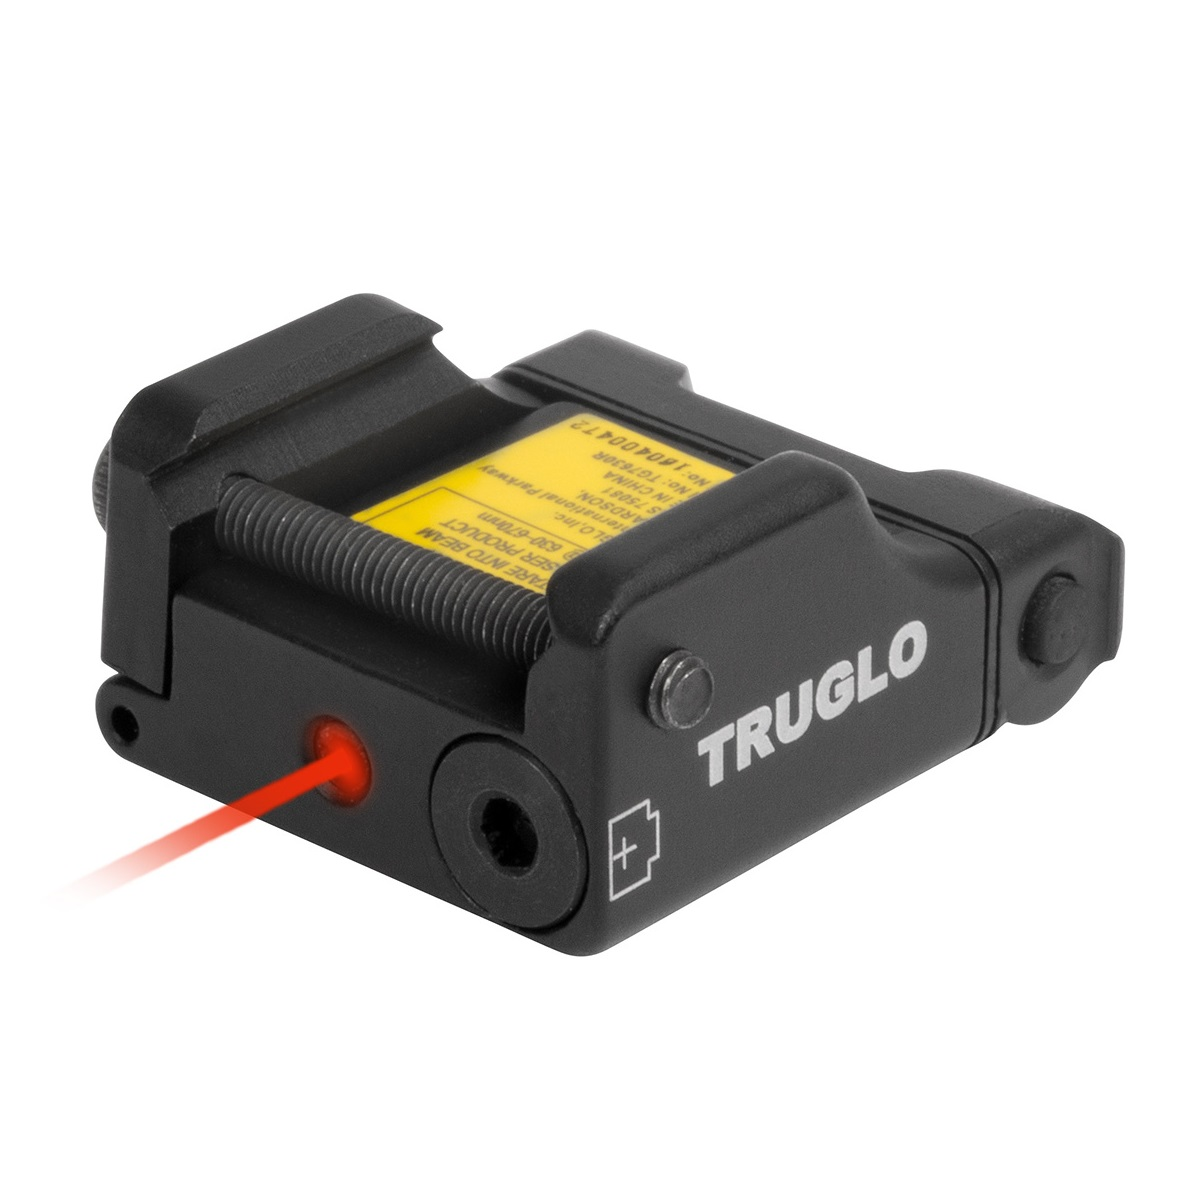 TRUGLO Micro-Tac Tactical Micro Laser Red Laser TG7630R